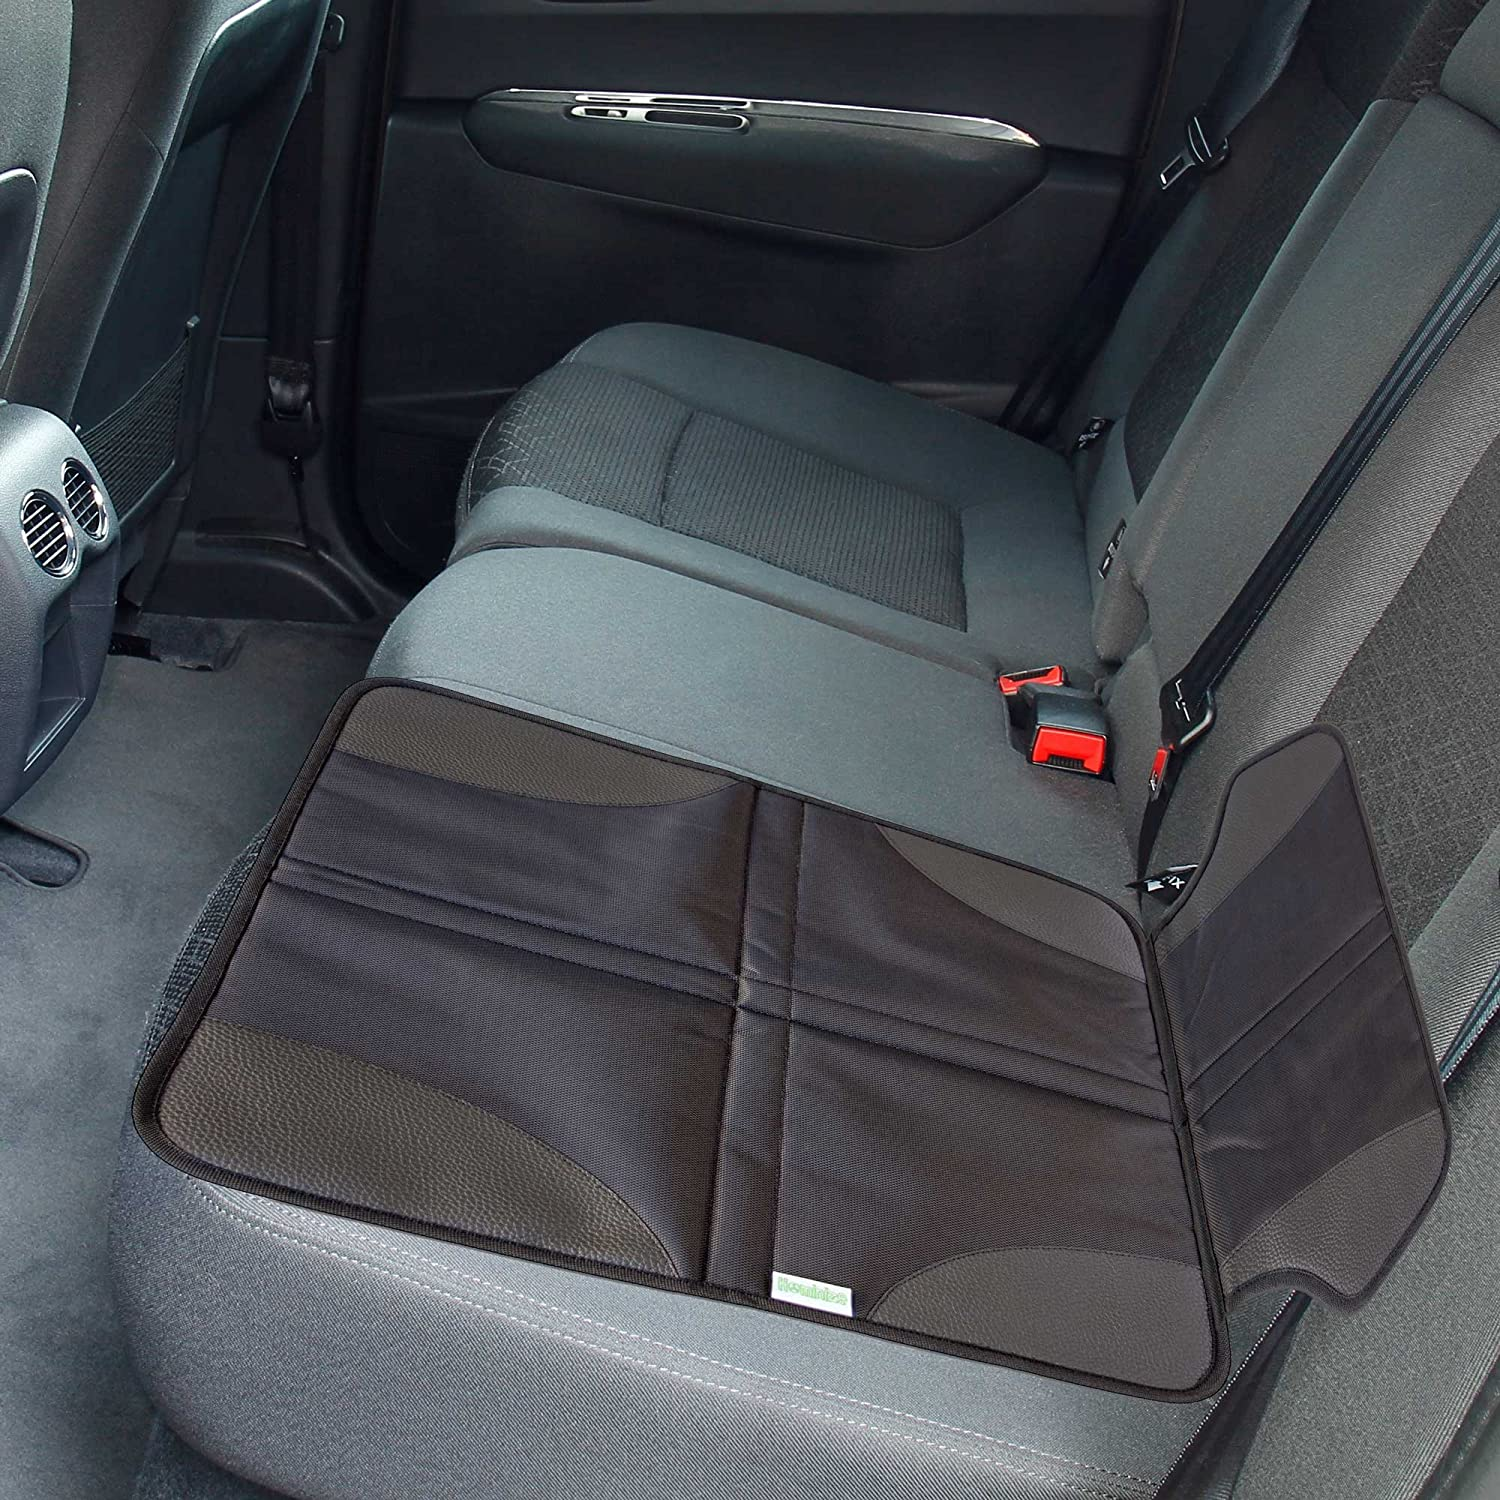 Hominize Car Seat Protector - Premium Seat Saver for Baby Carseat/Booster - Extra Large